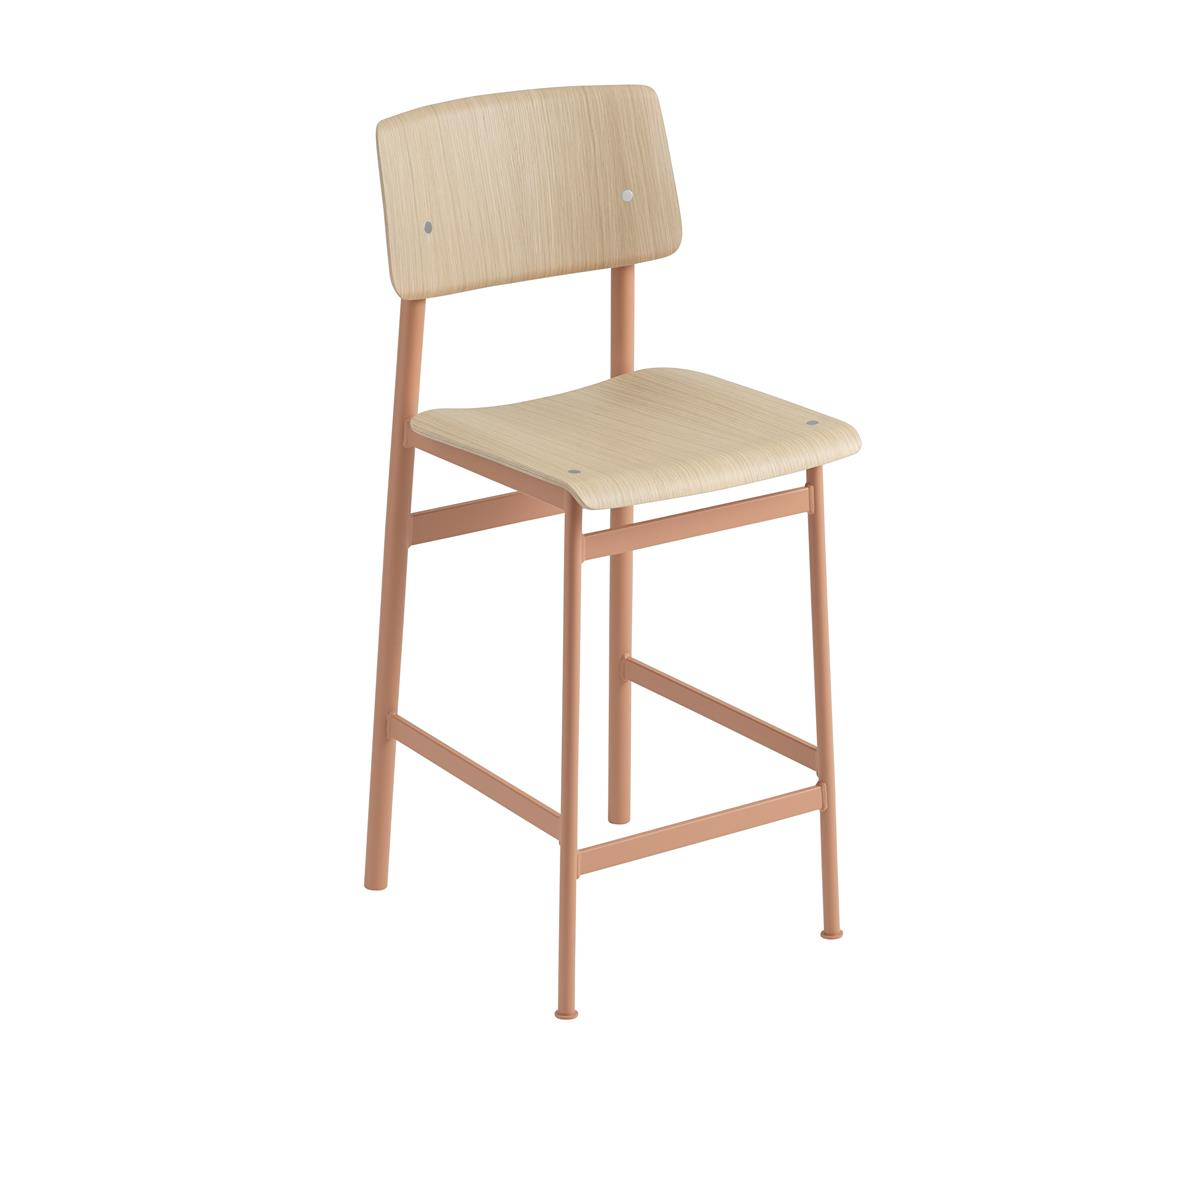 Loft Bar Stool H65 - Dusty Rose & Oak